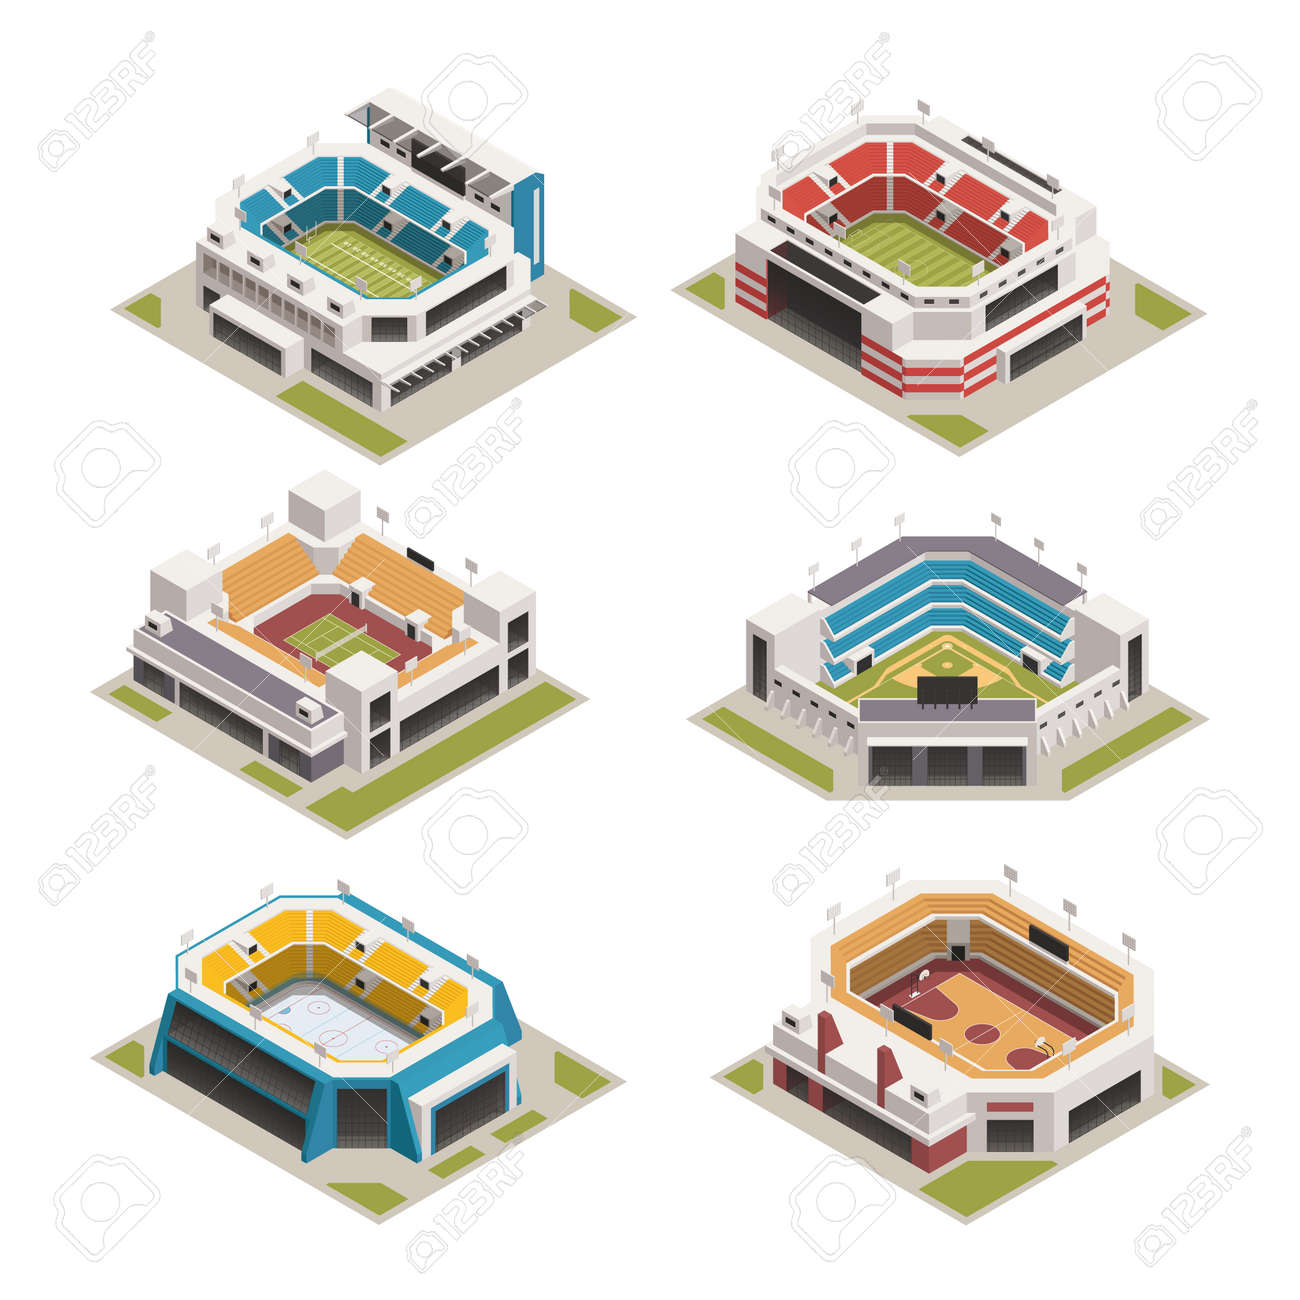 Worlds famous biggest sport competitions stadiums arenas and basketball court buildings isometric icons set isolated vector illustration - 165886622